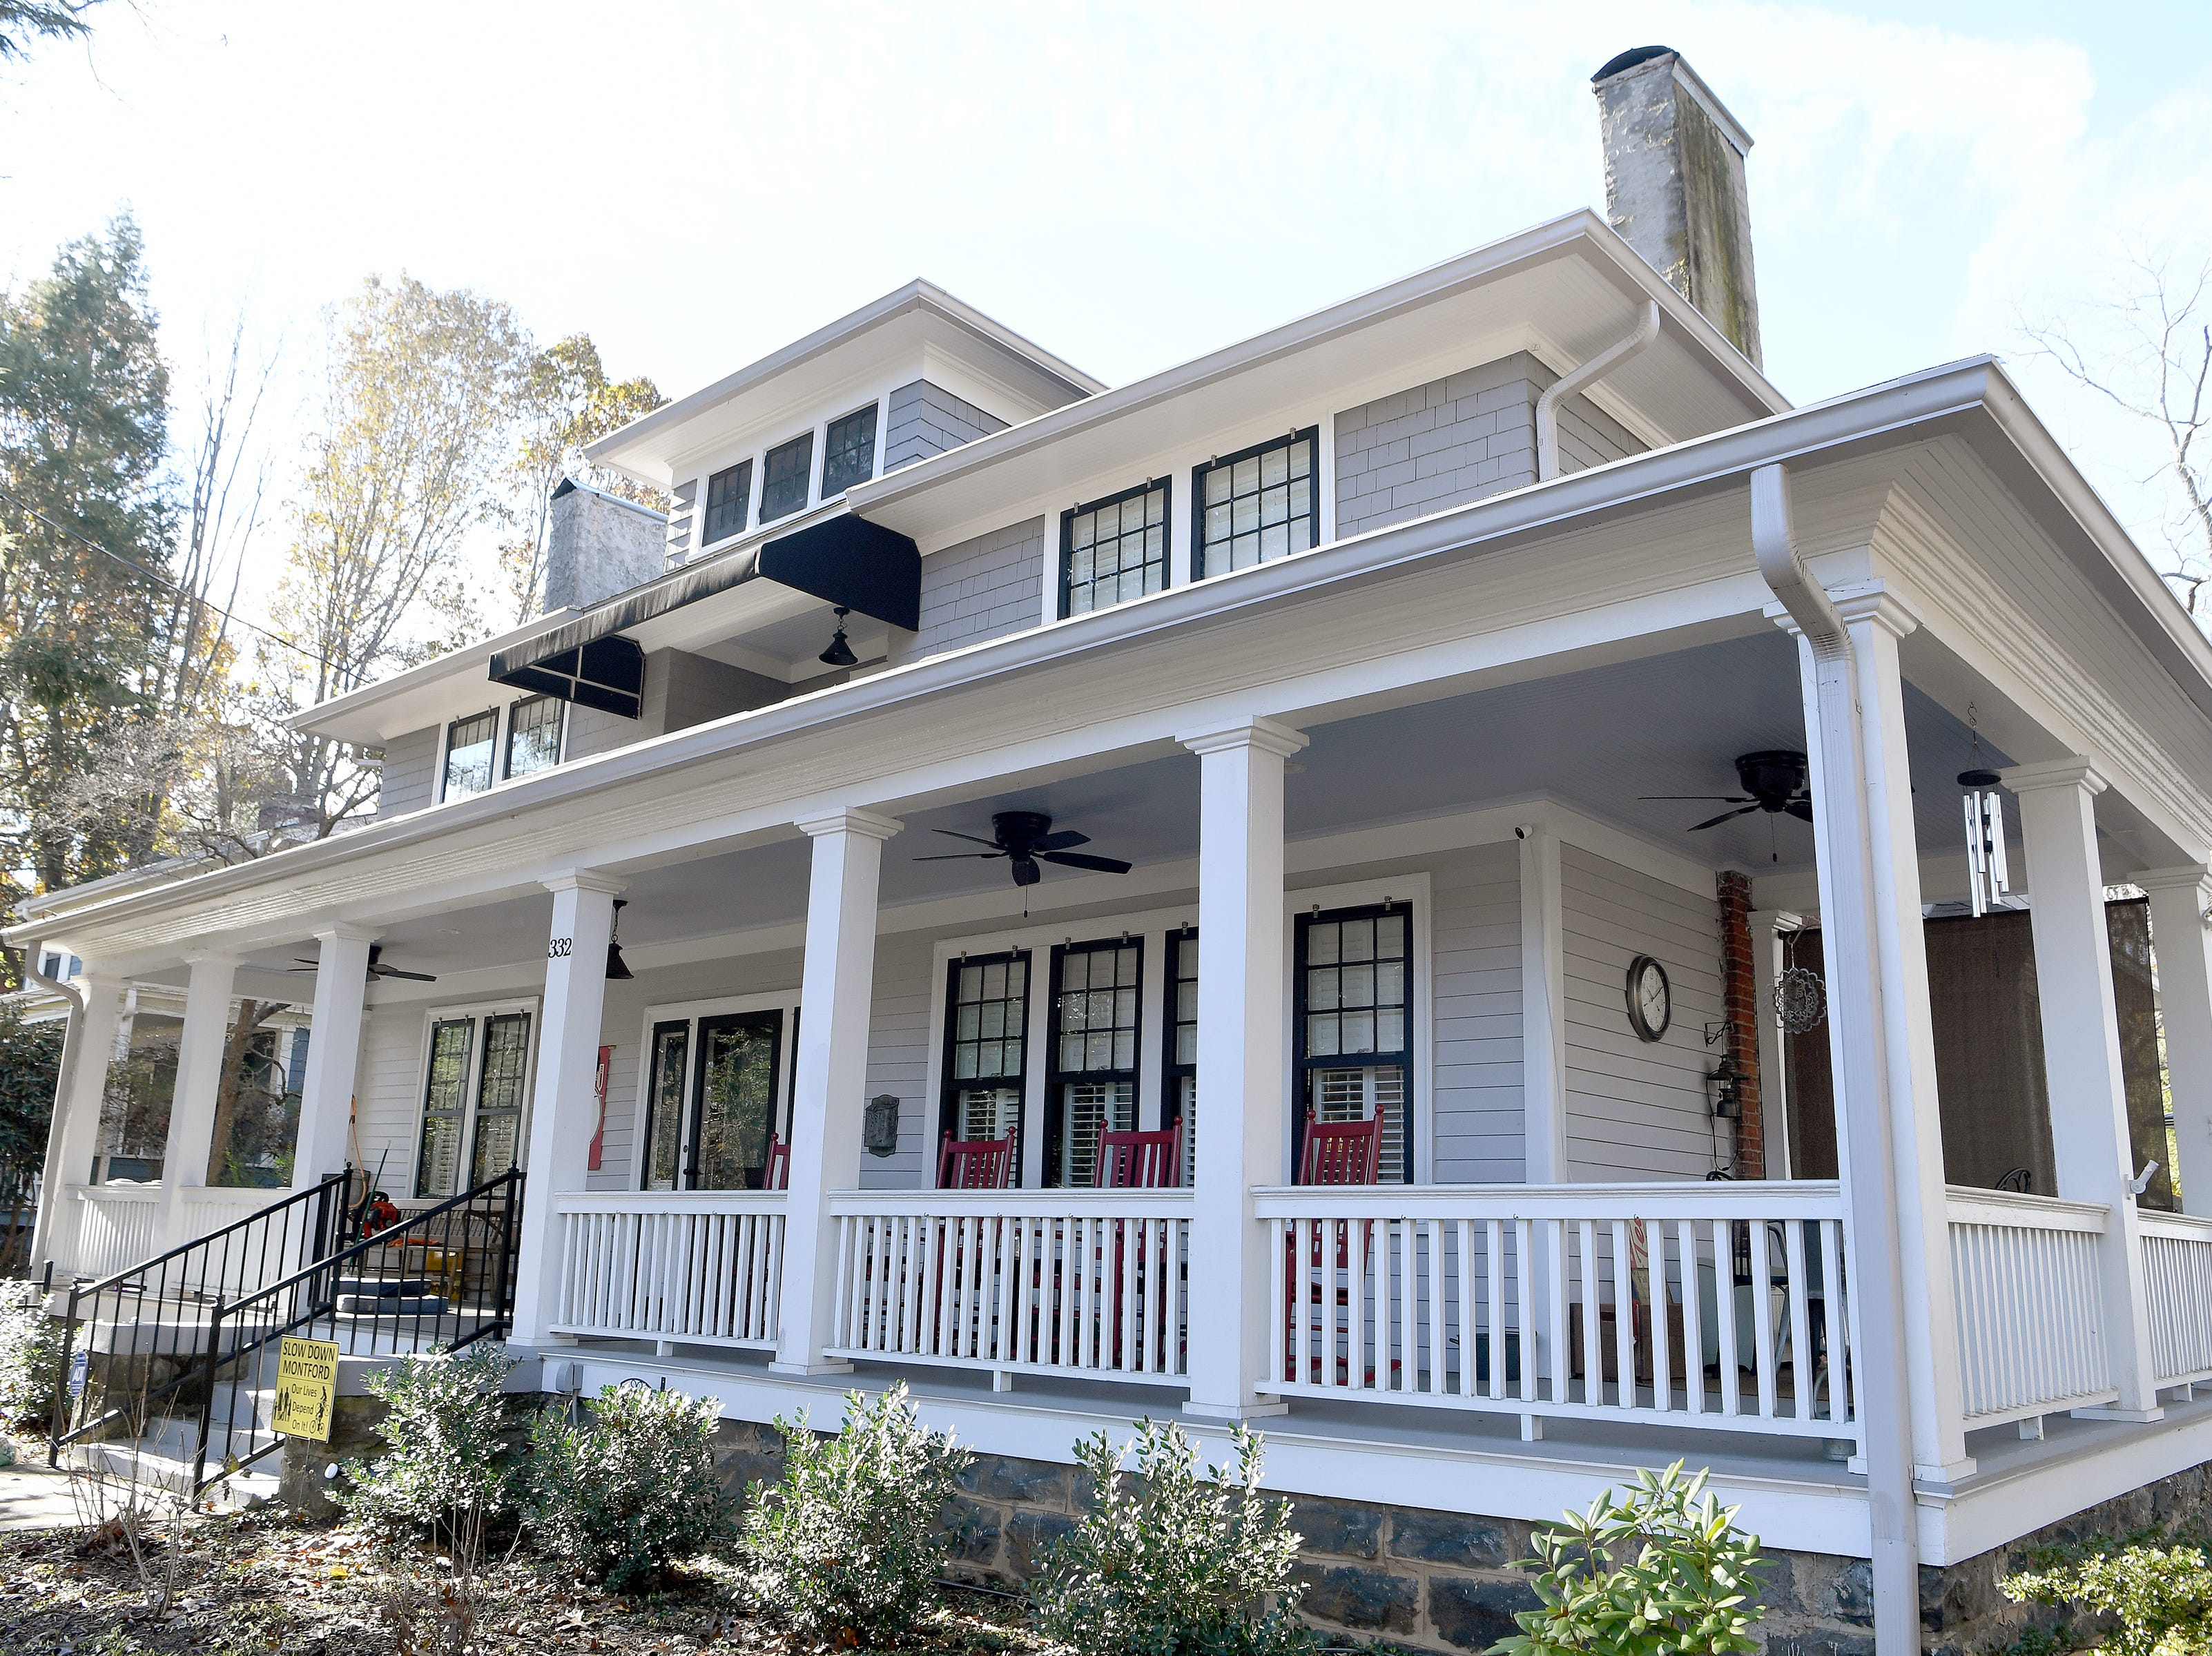 Linda and Marc Voorhees purchased an historic home in Montford built in 1912 and have transformed it bringing their favorite aspects of all of the houses they have lived in together.